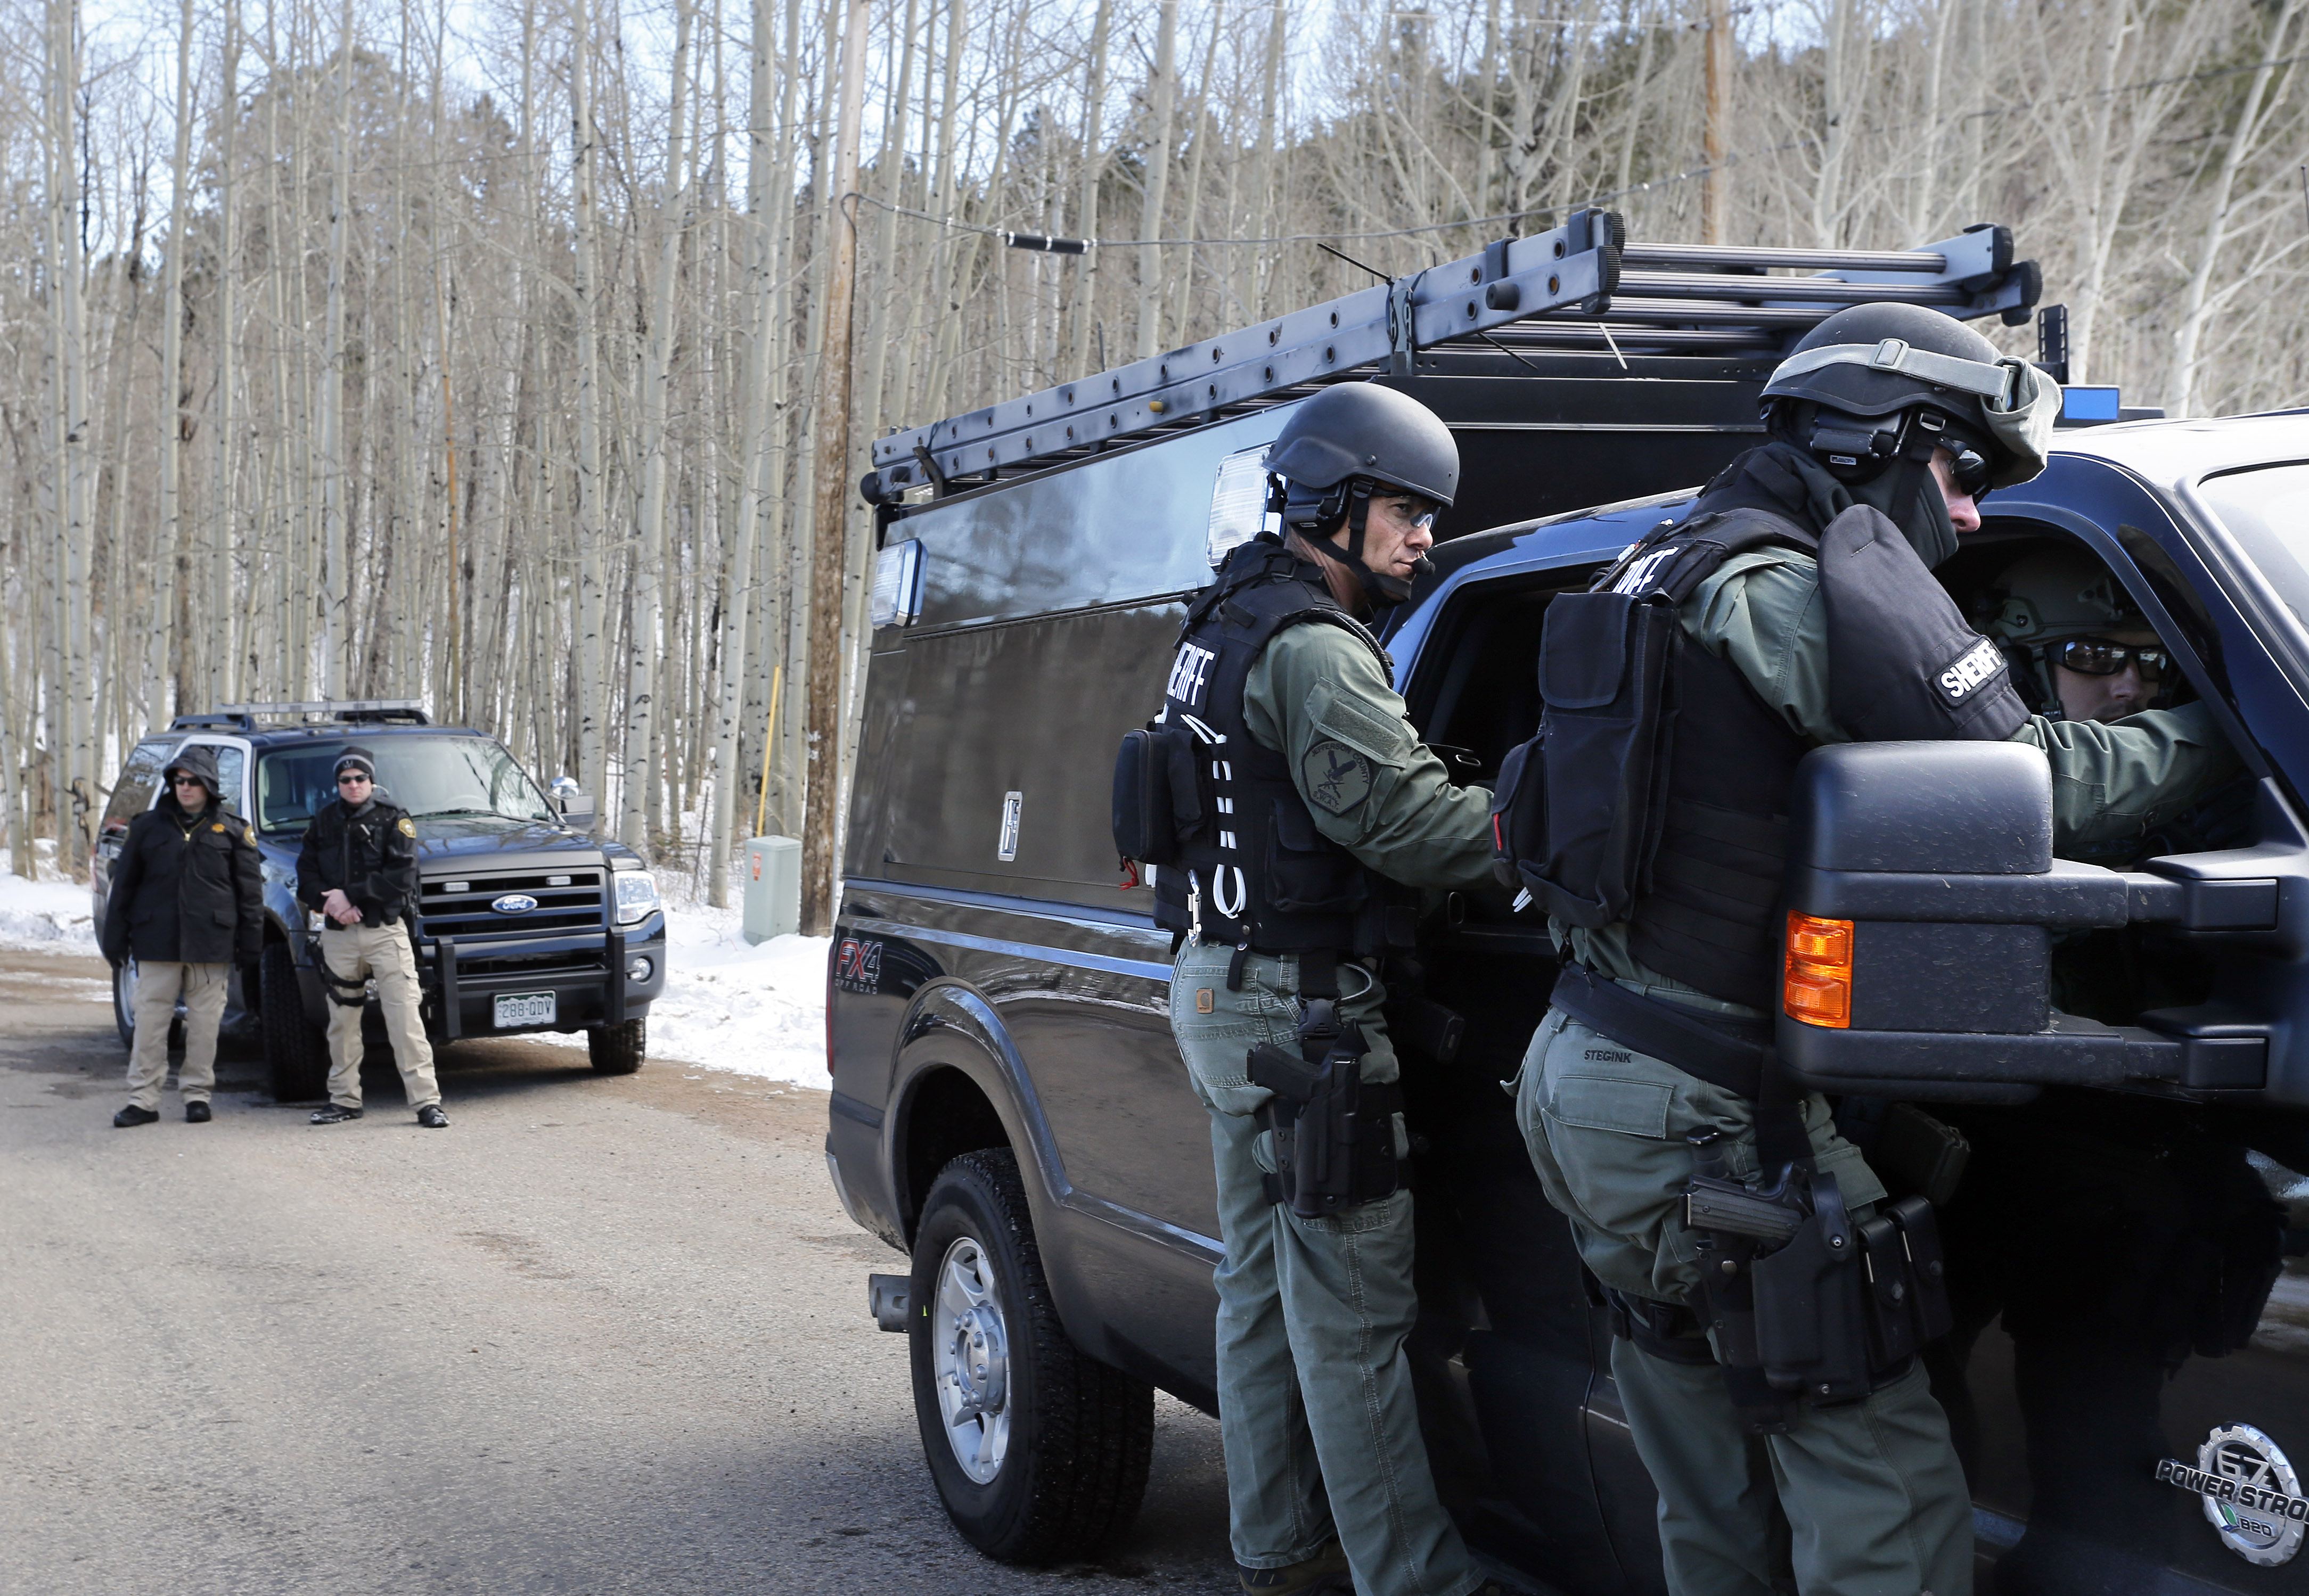 Jefferson County SWAT officers work at the scene where a man opened fire on sheriff's deputies before the officers returned fire, killing the man, outside Bailey, Colo. on Feb. 24, 2016.